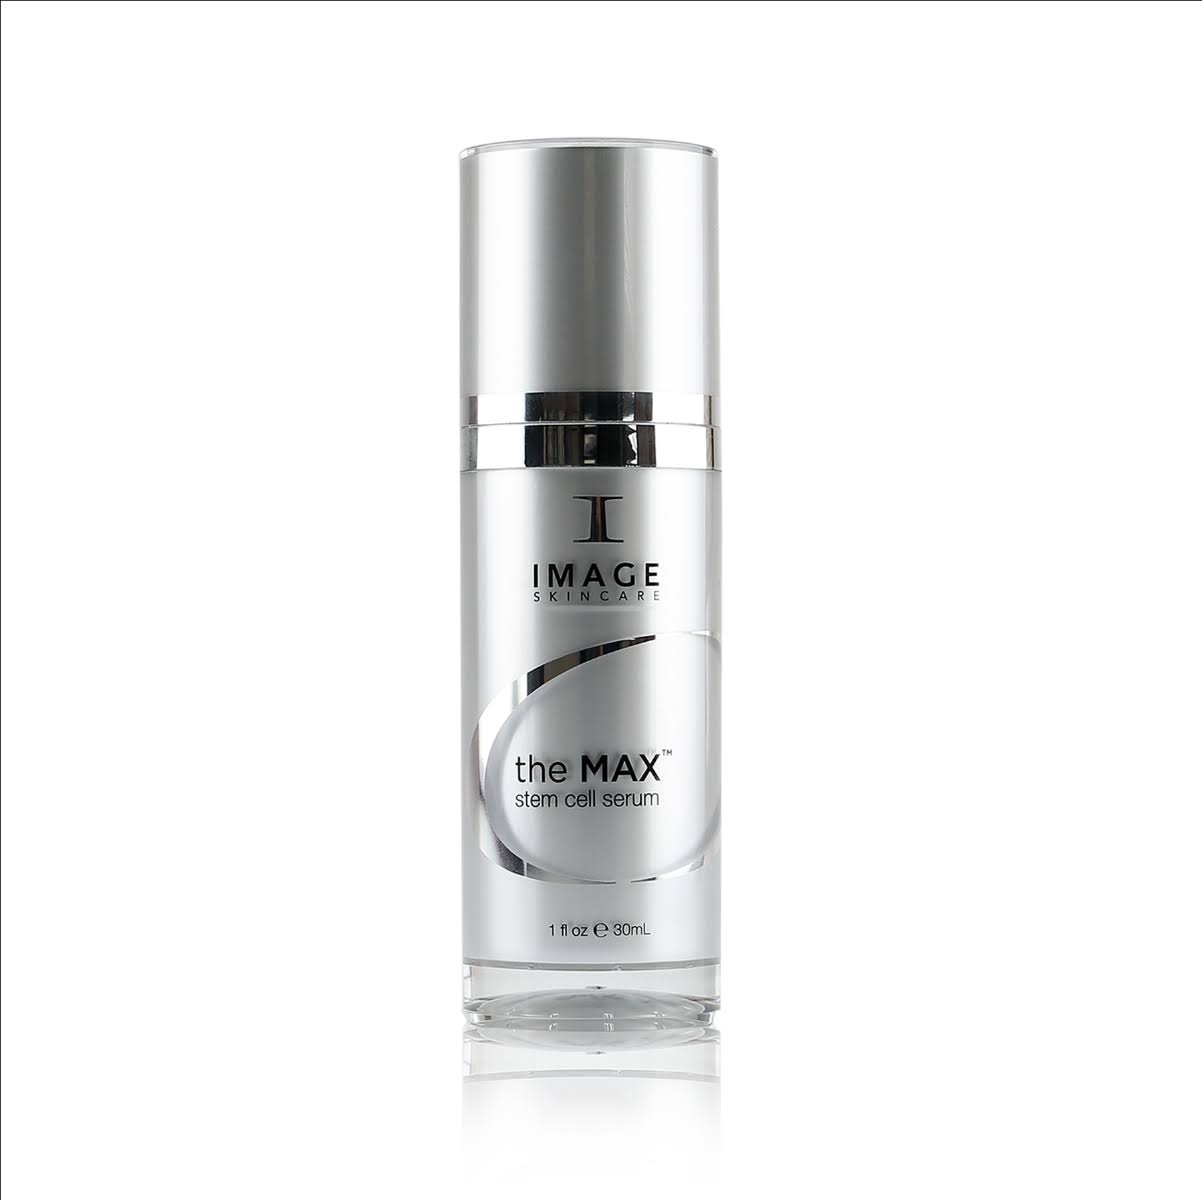 Image the MAX Stem Cell Serum - 30ml